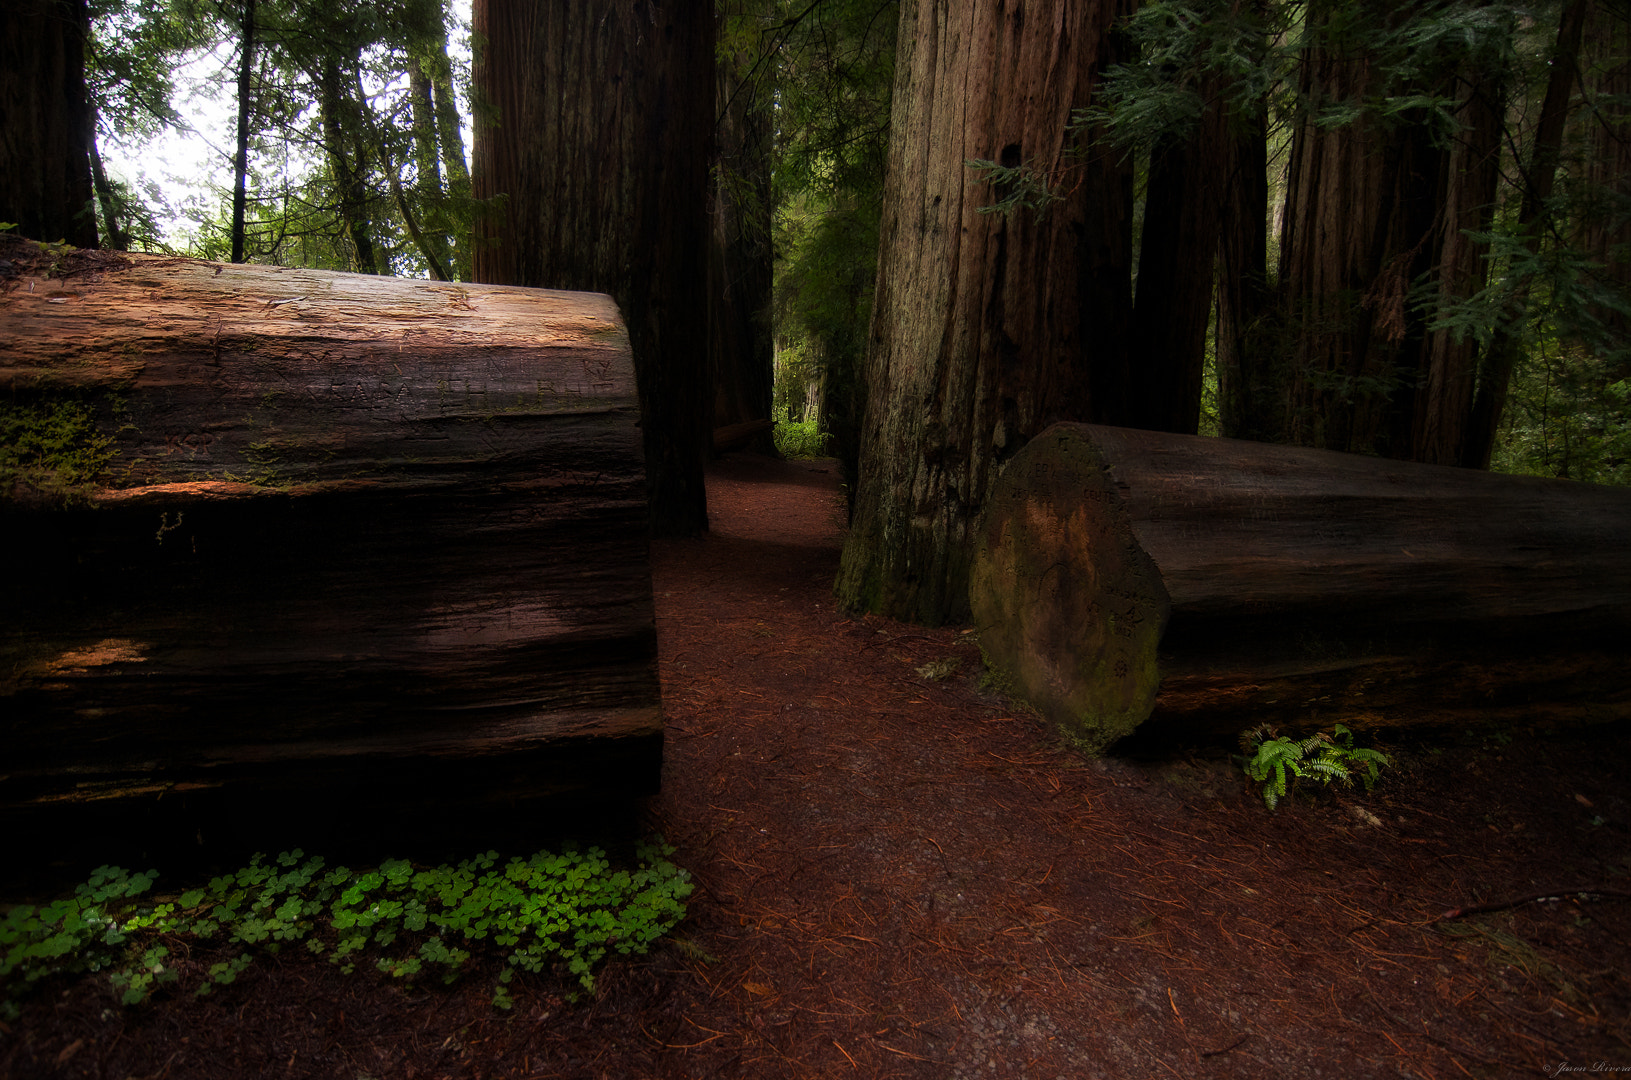 Photograph Redwood Sequoia National Park by Jason Rivera on 500px